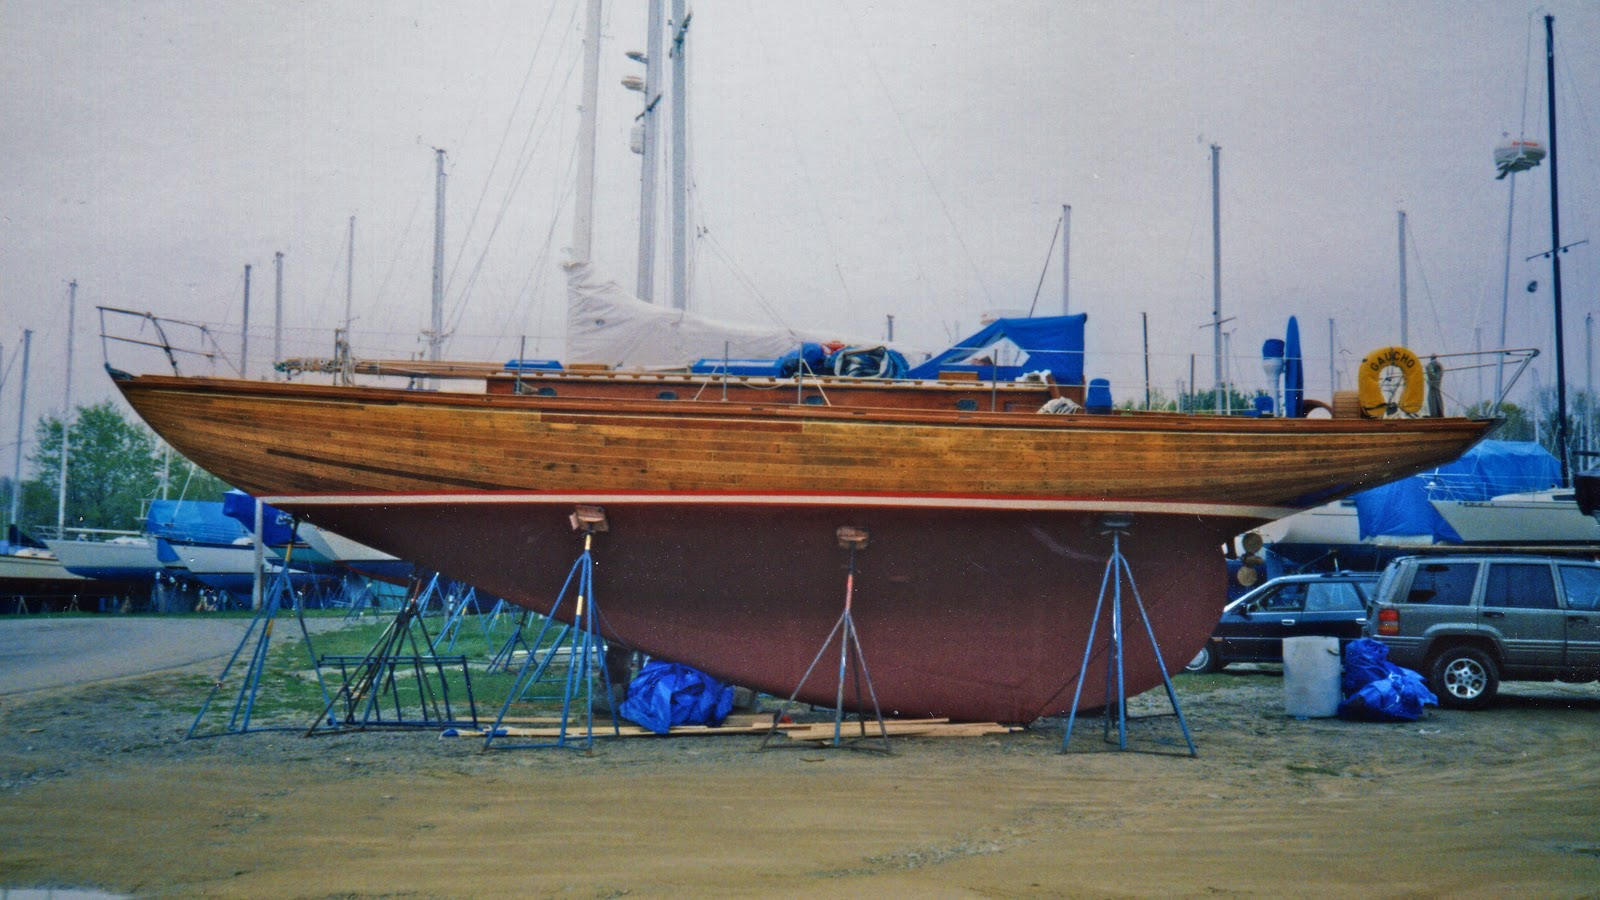 Gaucho A Classic Wooden Yacht The Peregrine Sea